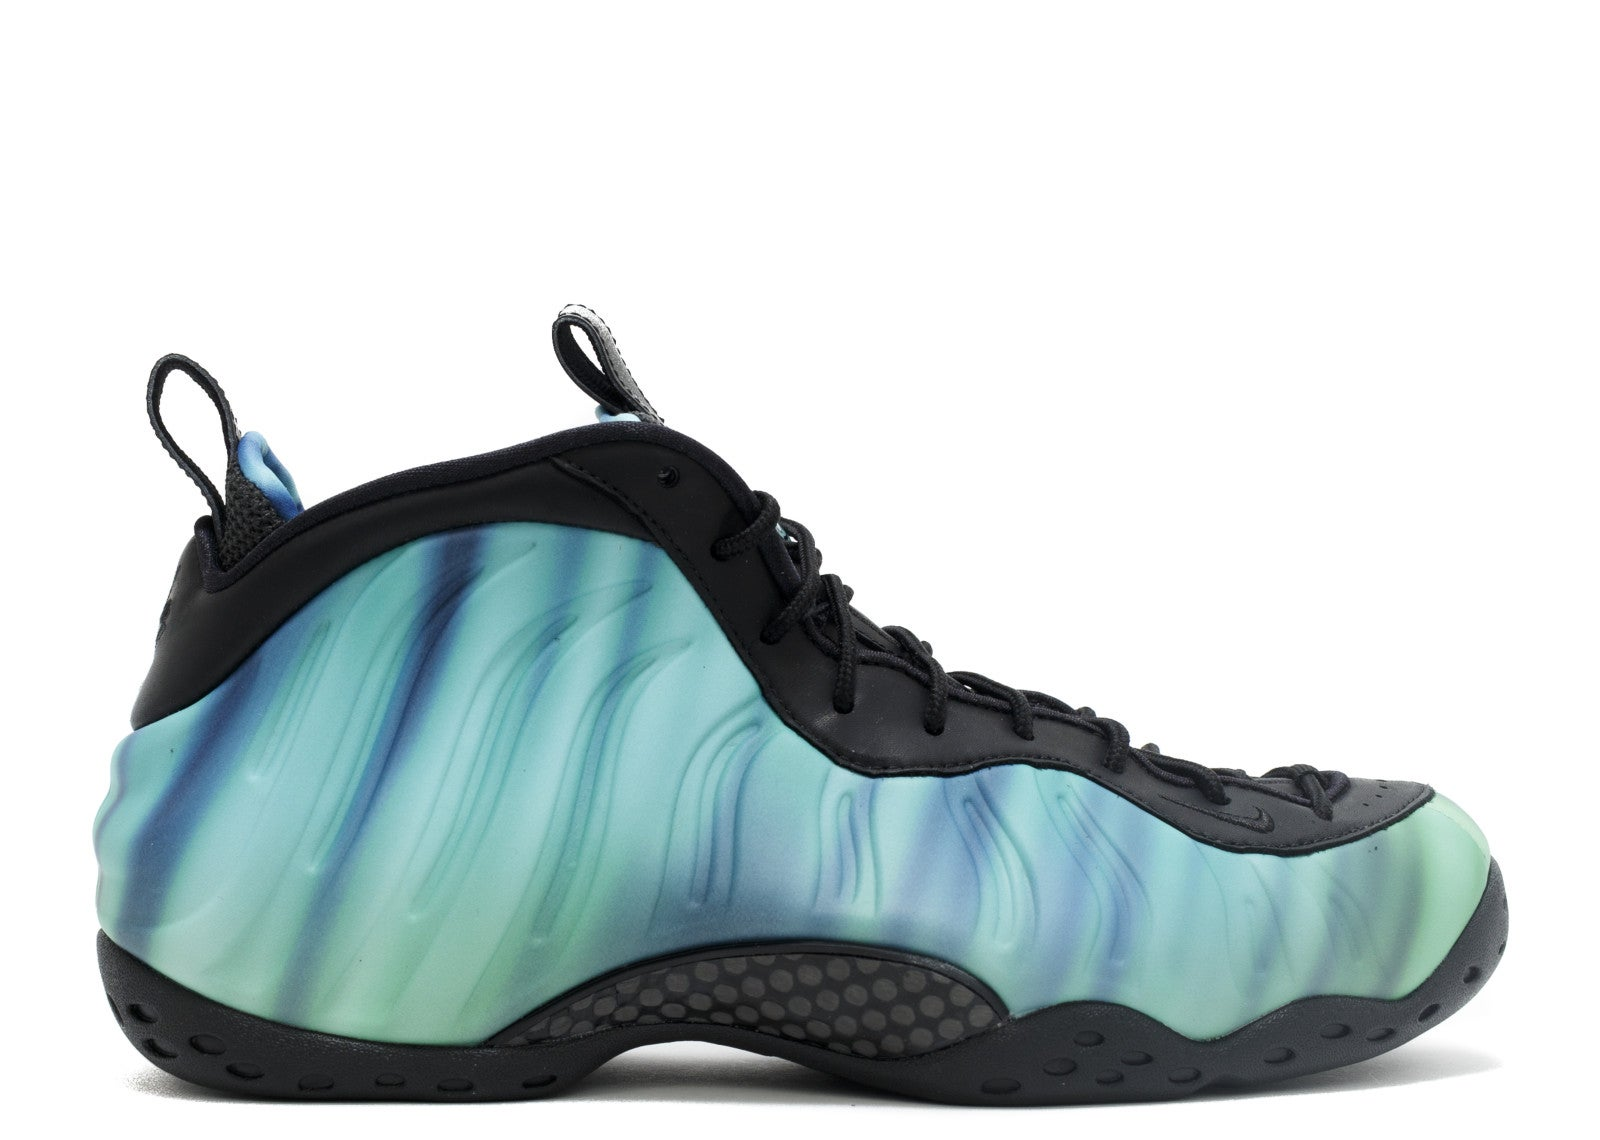 Nike Air Foamposite One PRM Weatherman? Request